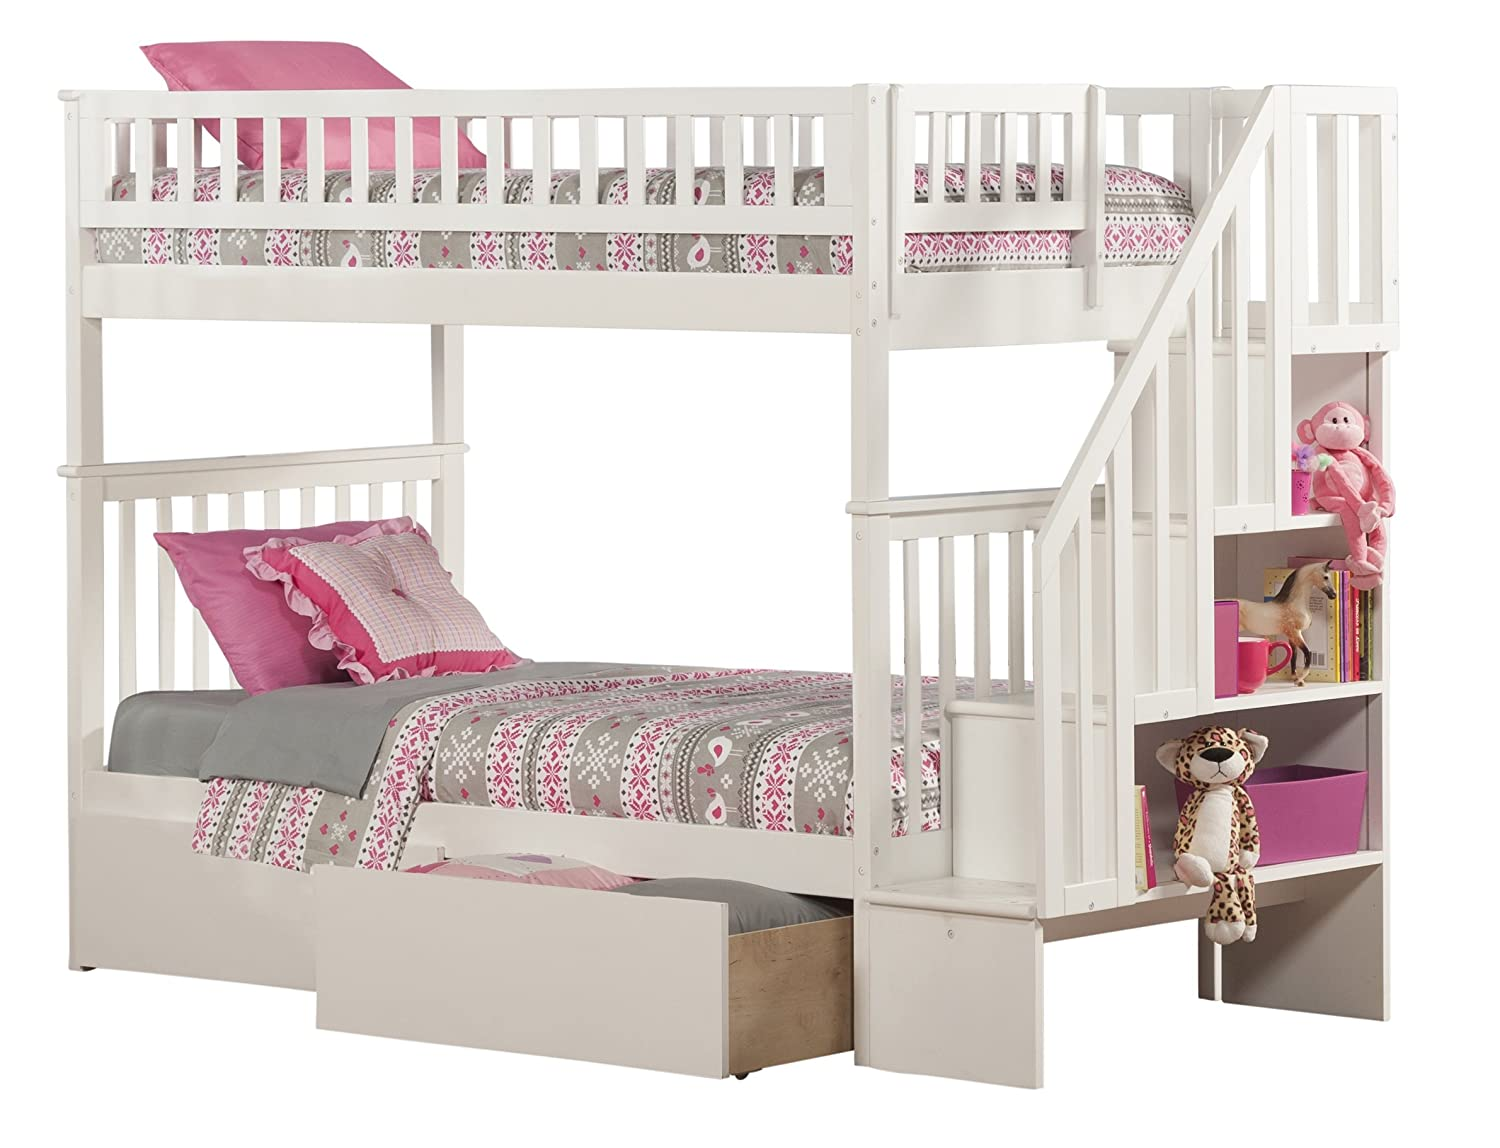 Woodland Staircase Bunk Bed with Urban Bed Drawers - White - Twin Over Twin